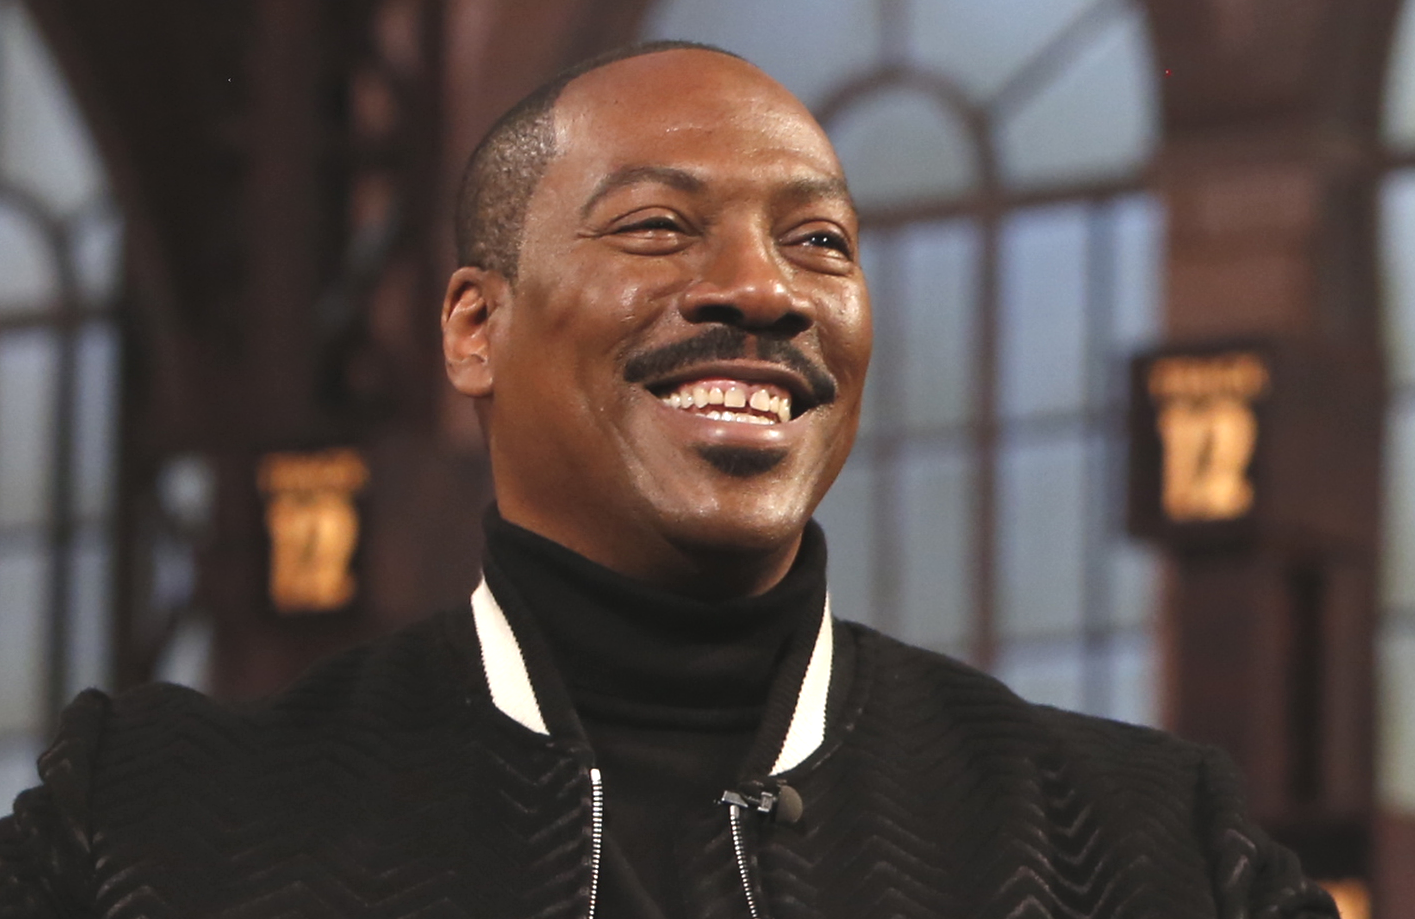 Eddie Murphy's return to Saturday Night Live has been 35 years in the making.